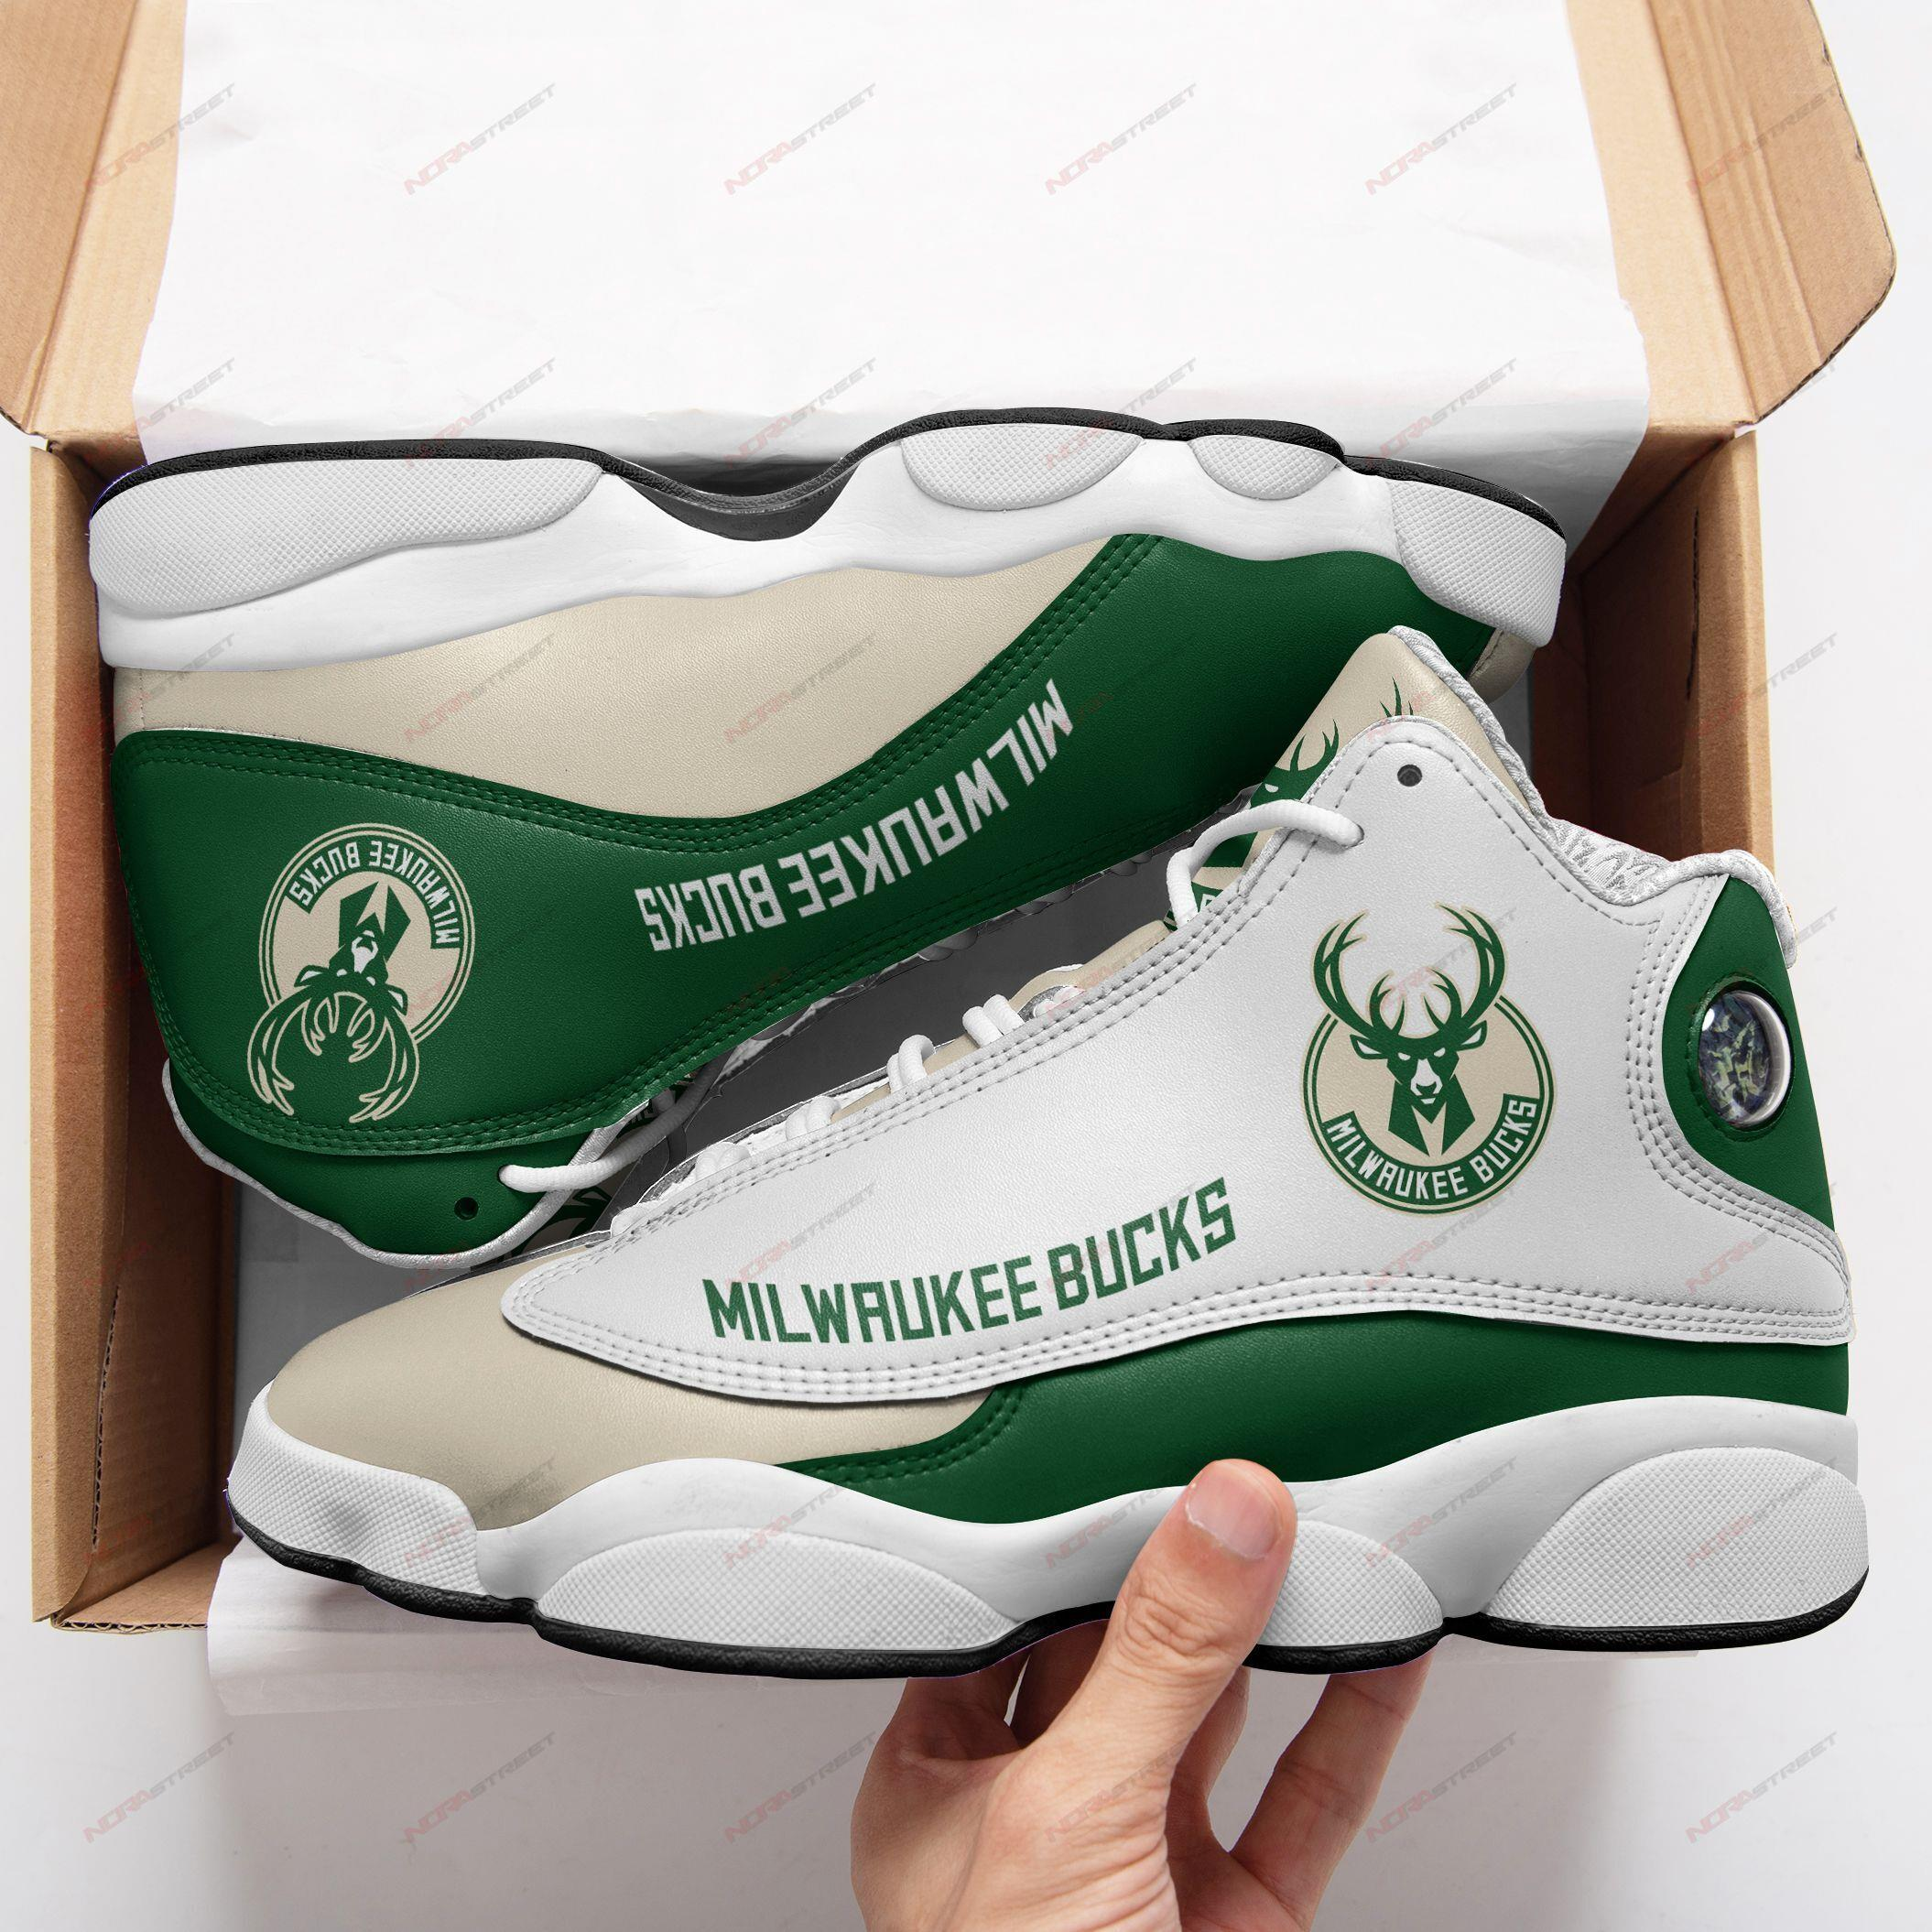 Milwaukee Bucks Air Jordan 13 Sneakers Sport Shoes